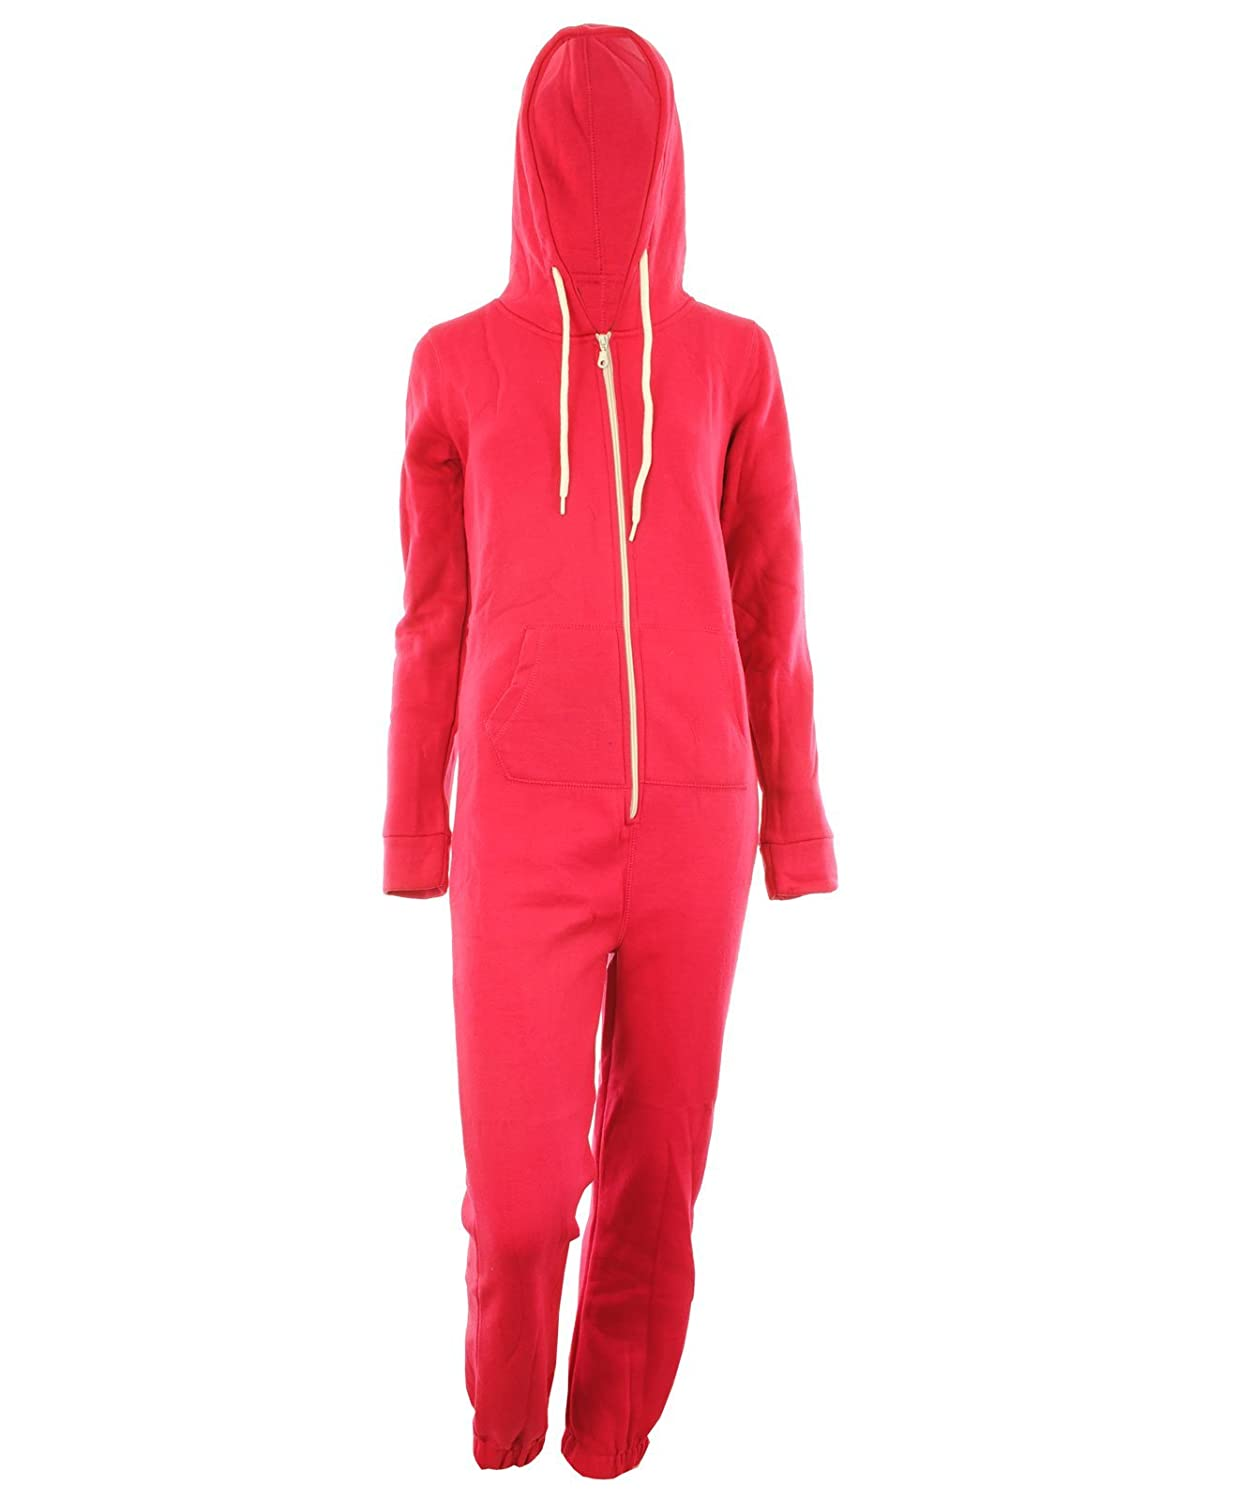 Dayna New Womens Unisex Fleece Plain Coloured Hooded Cuffed Zip Fastening Front Ladies Jumpsuit